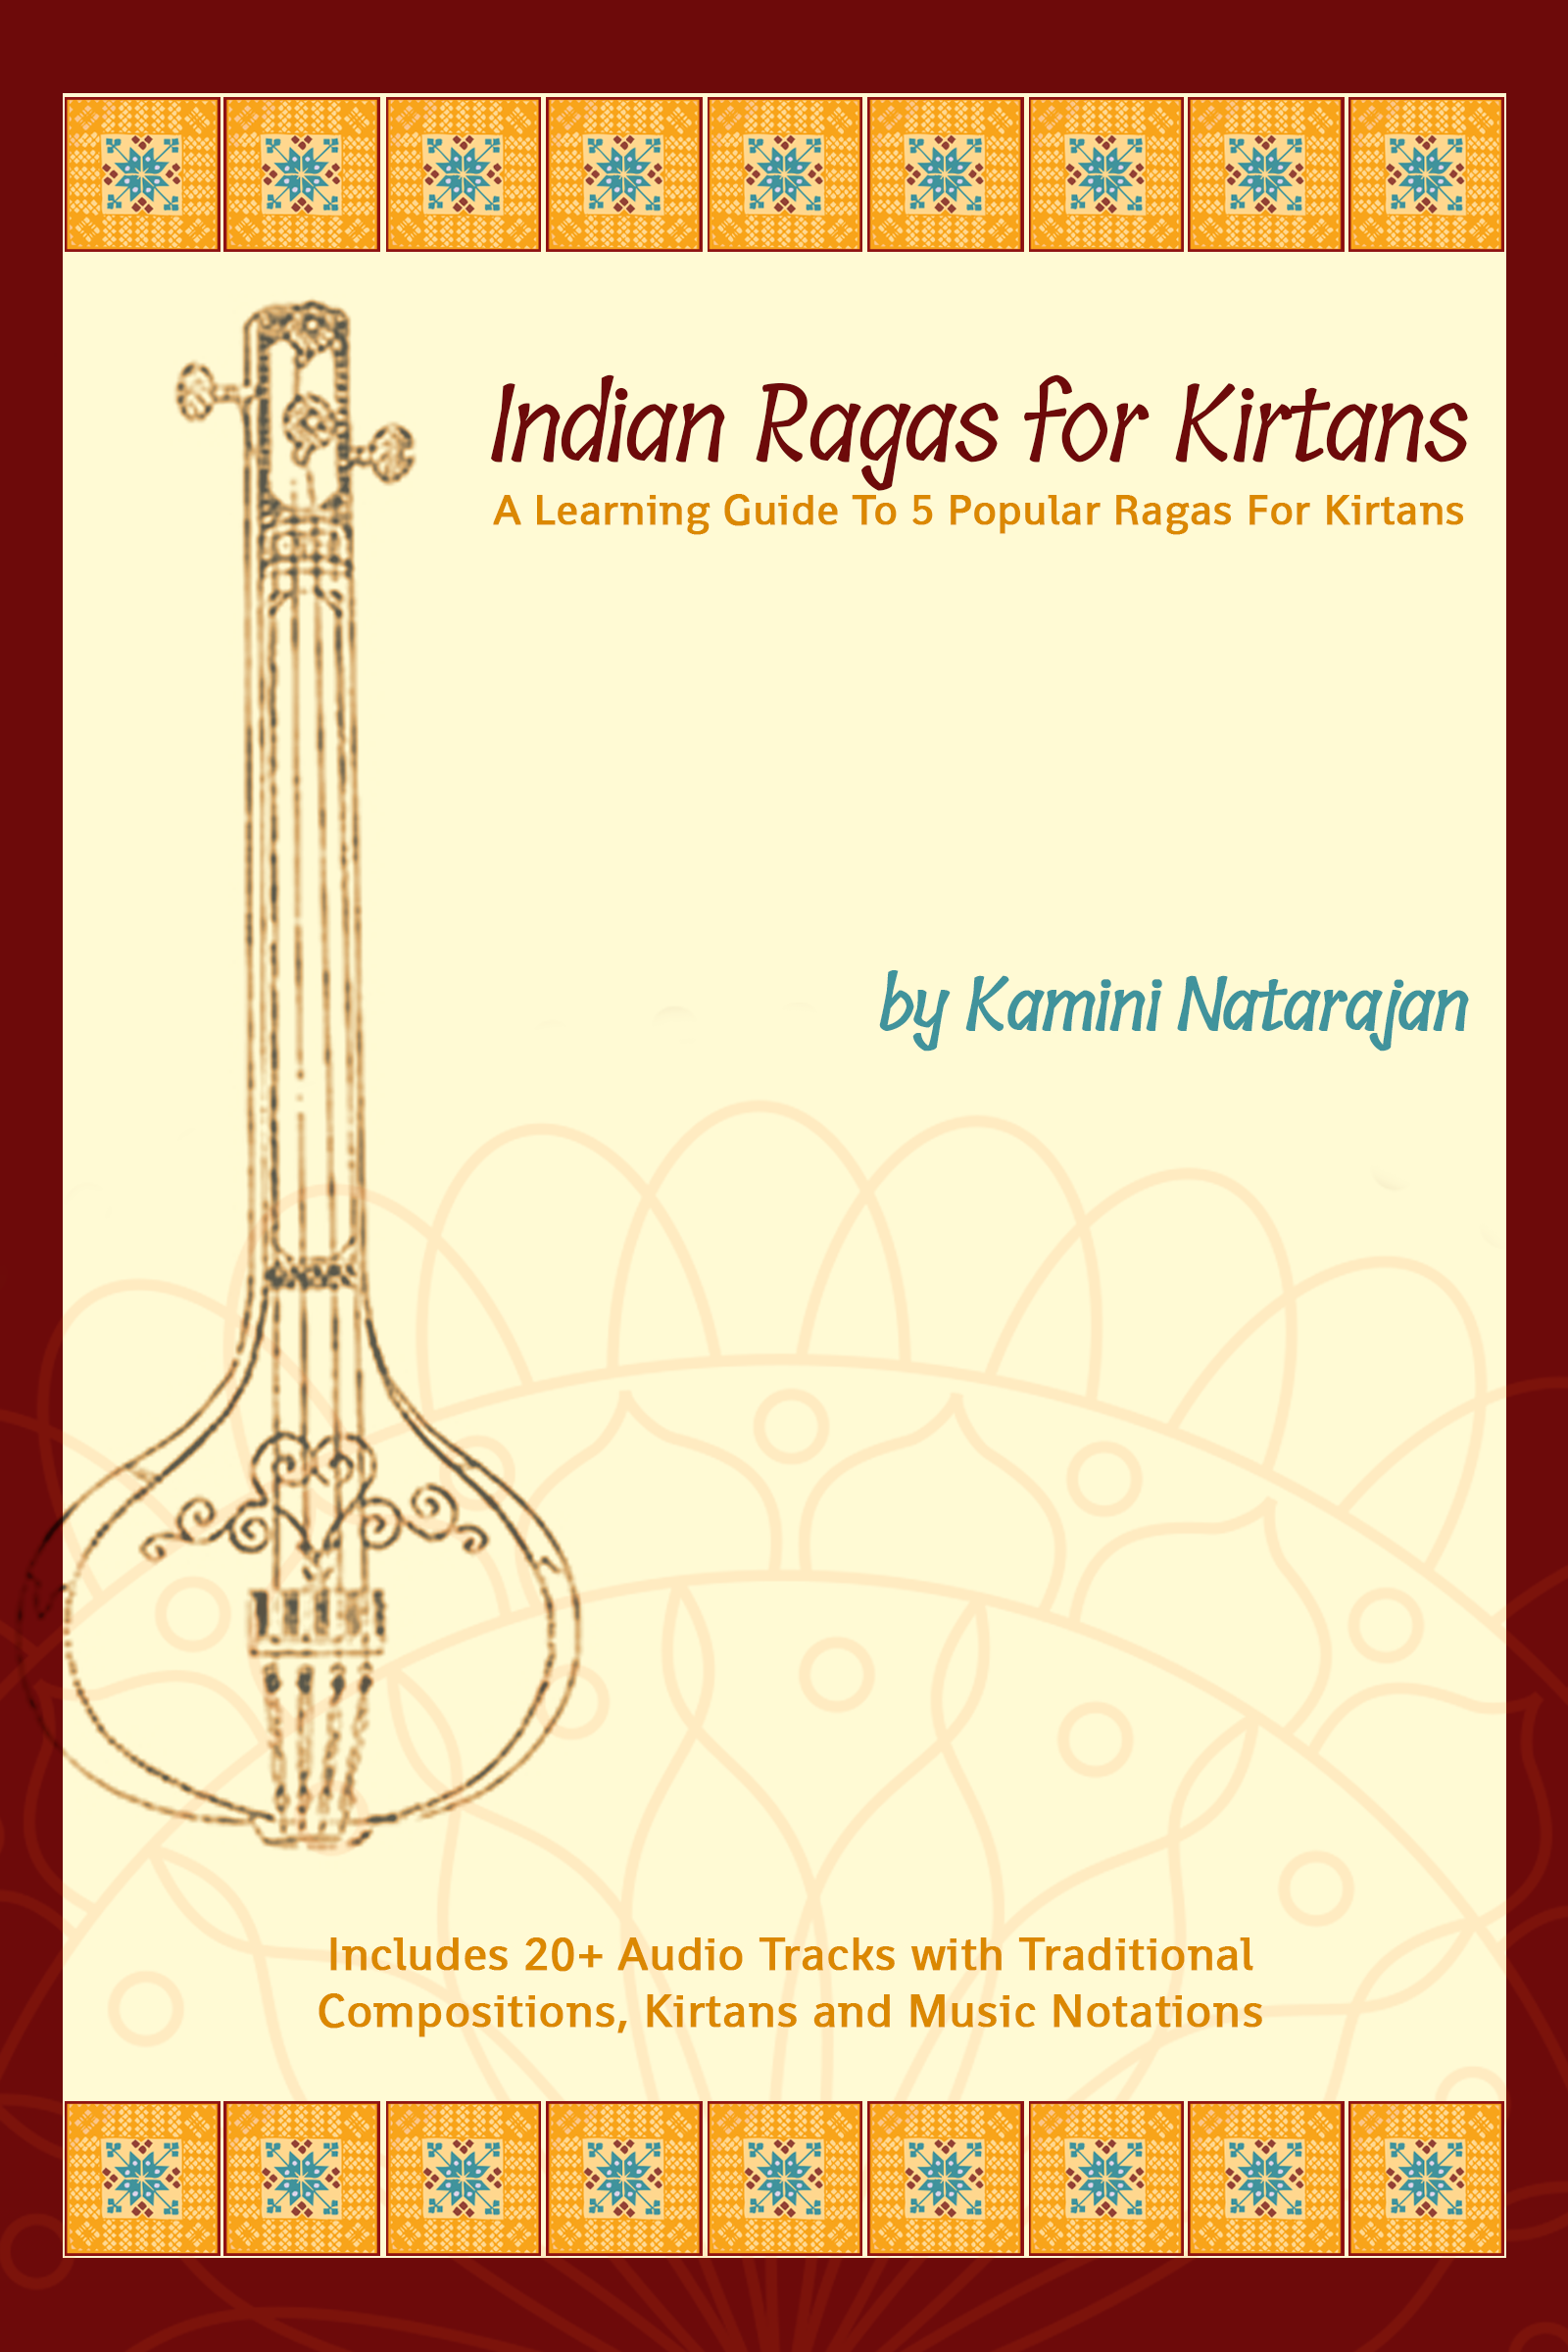 Indian Ragas for Kirtans